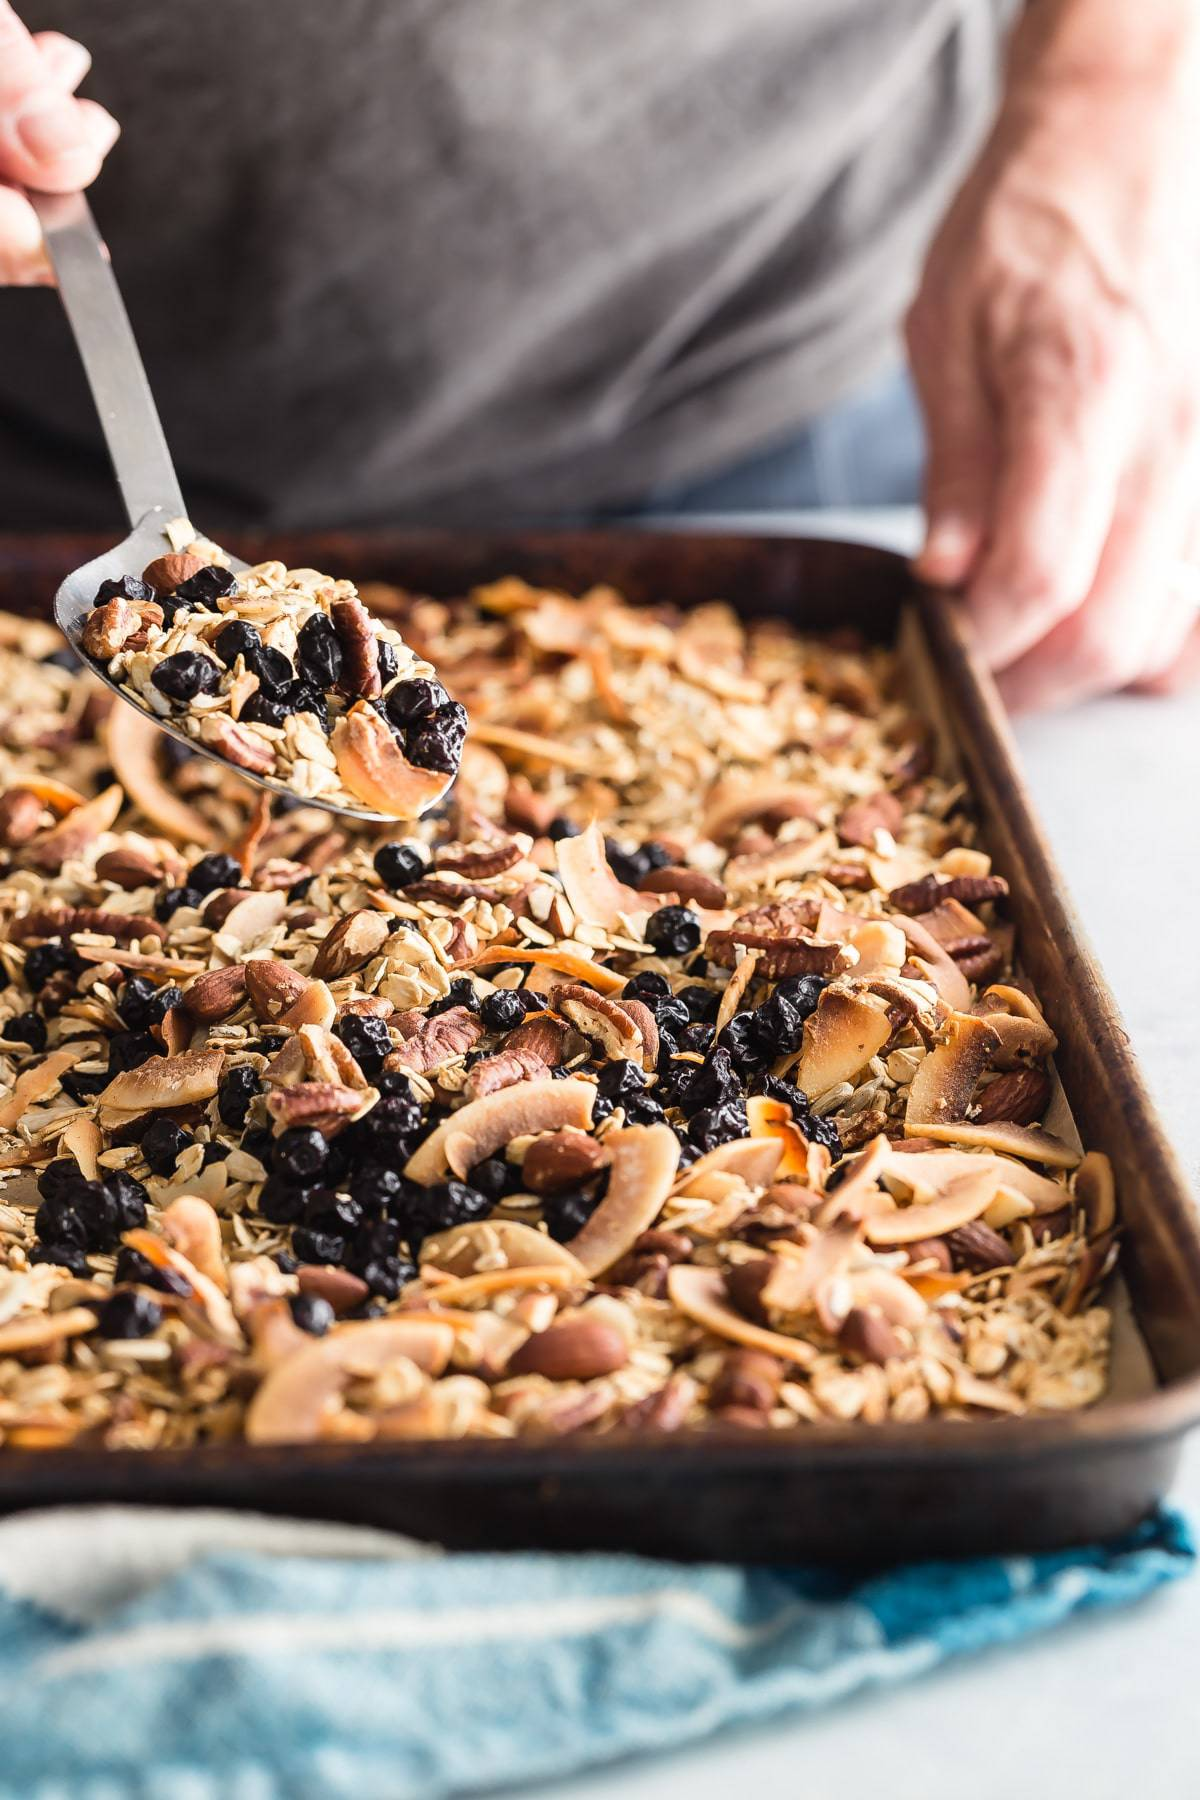 Homemade blueberry granola just out of the oven